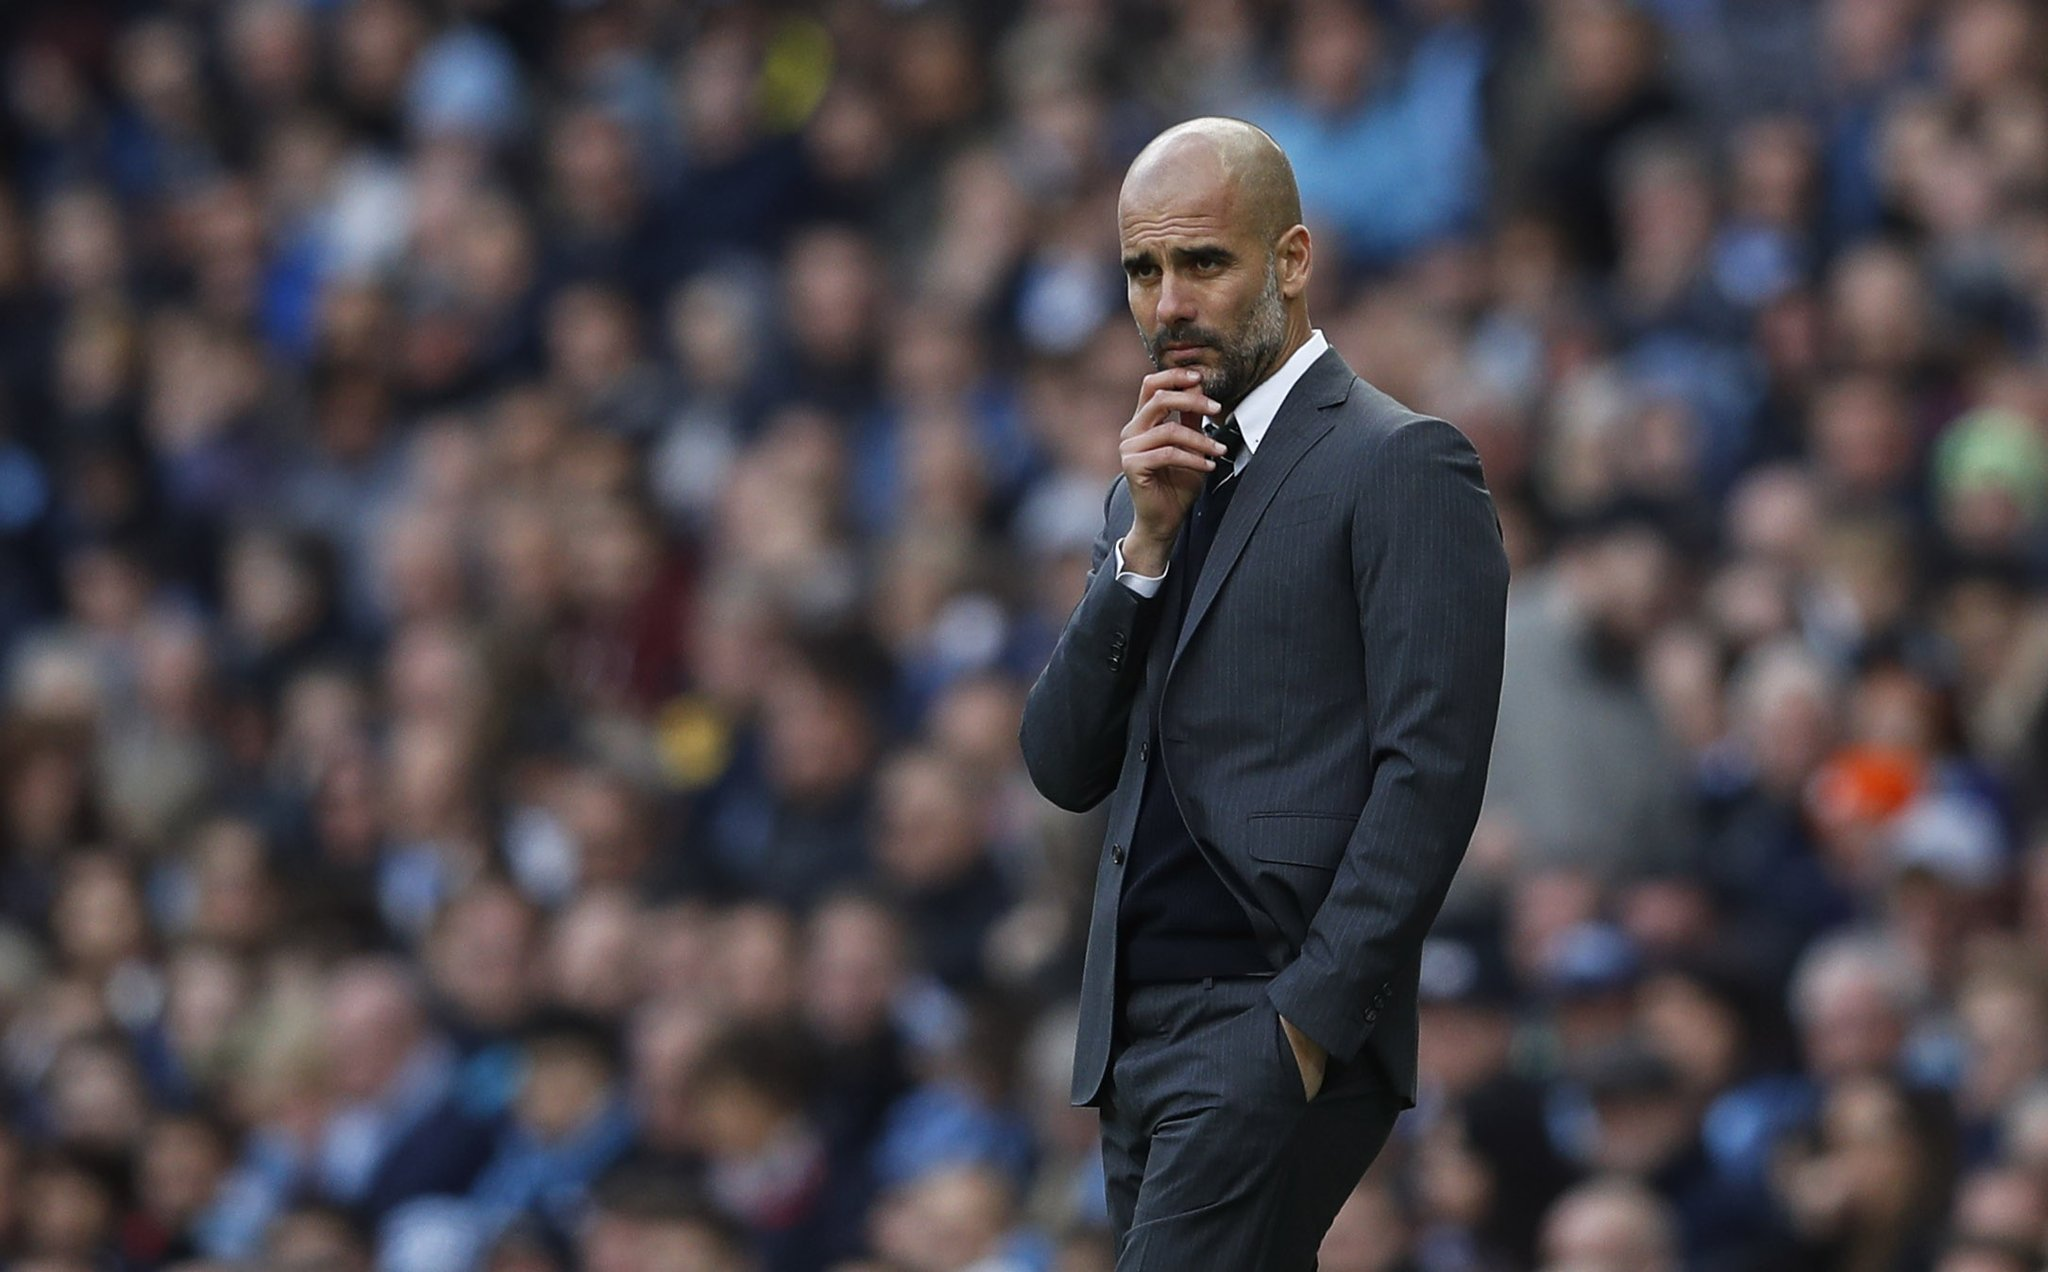 Guardiola, Zidane, Klopp, Ranieri Up For FIFA Best Coach Award